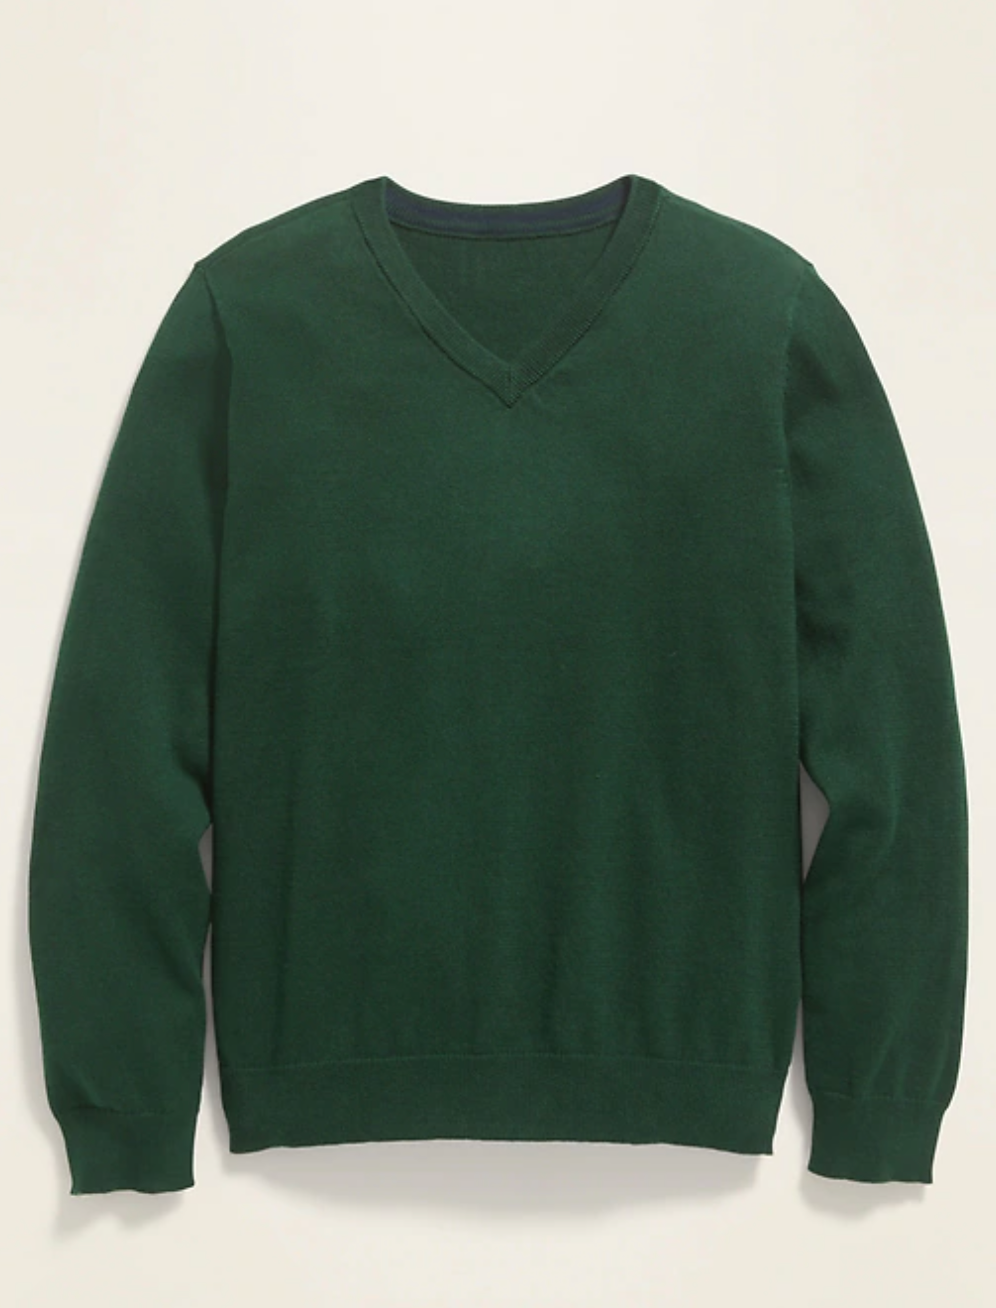 a forest green v-neck sweater